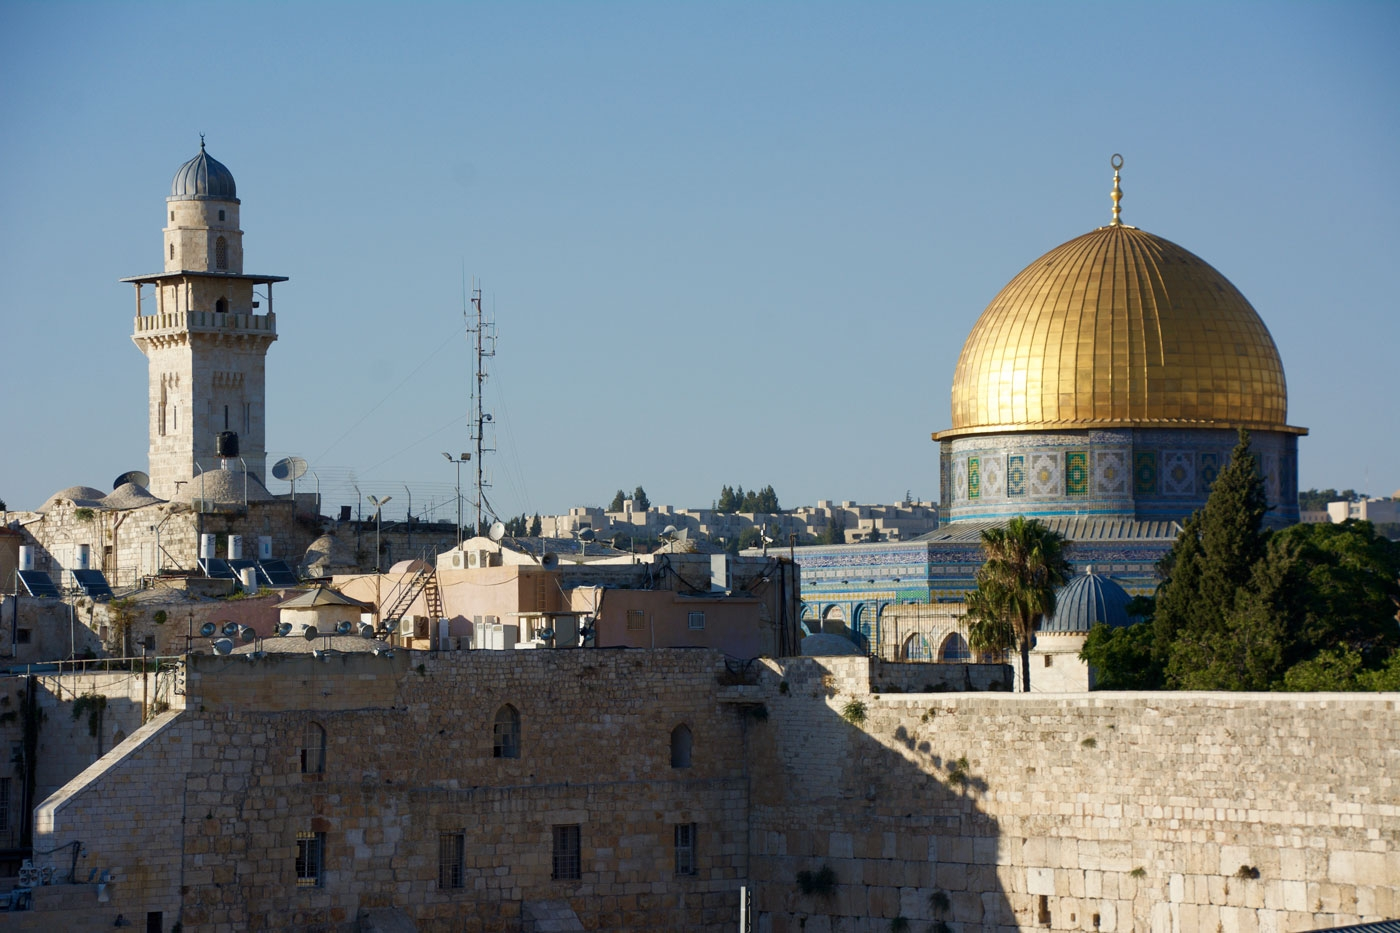 Western Wall & Dome of the Rock in Jerusalem's Old City